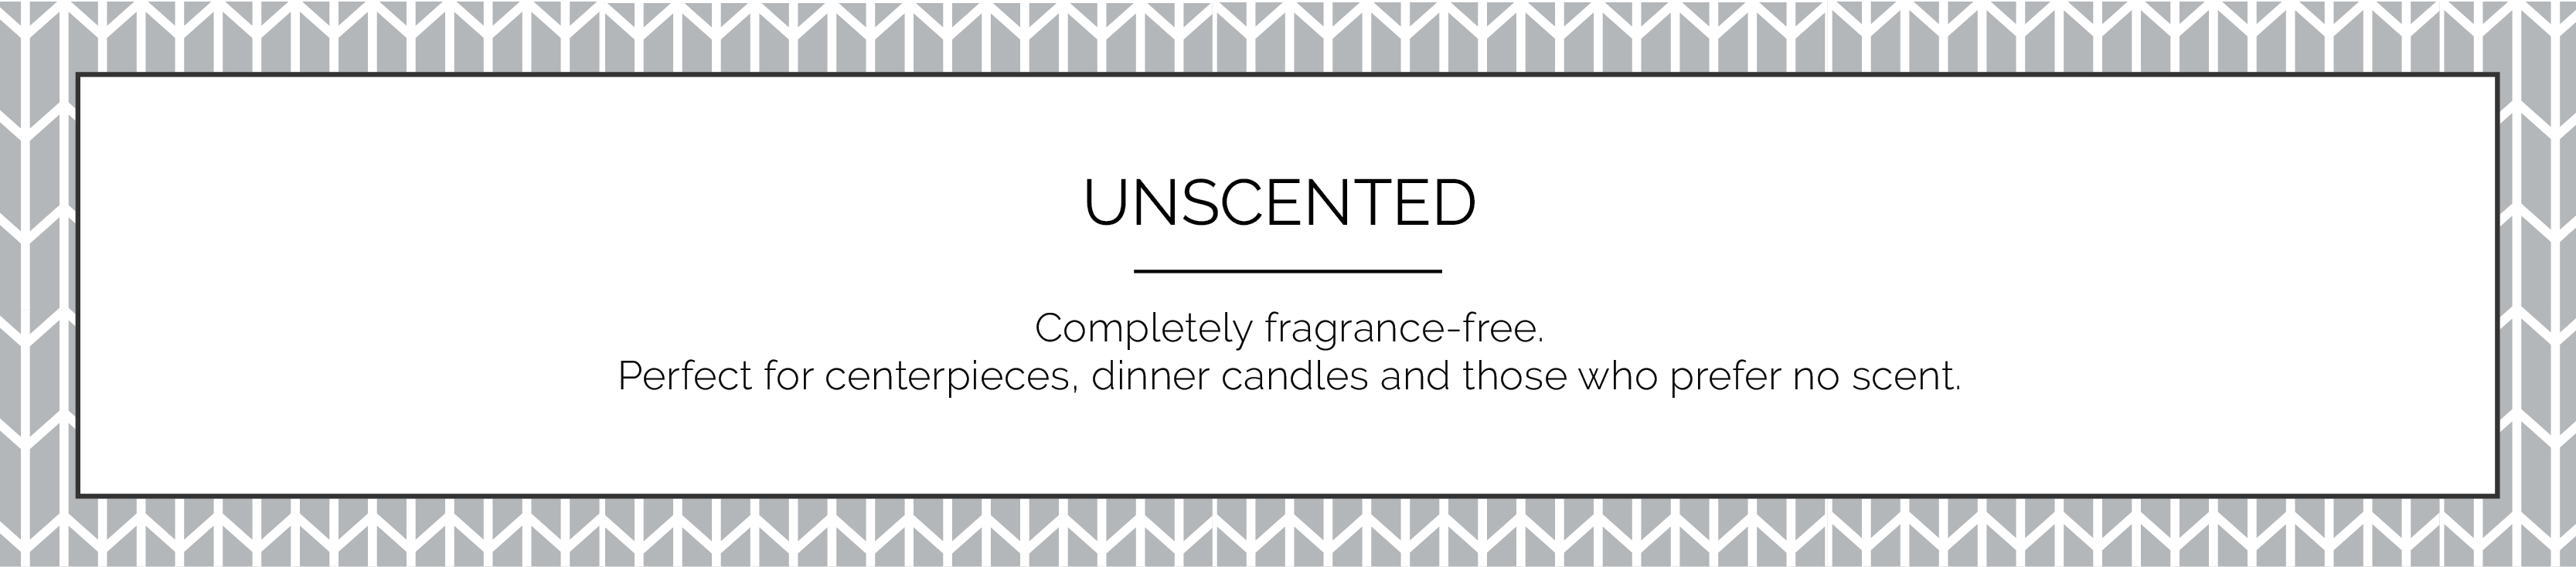 Unscented Candles with No Fragrance Without Fragrance